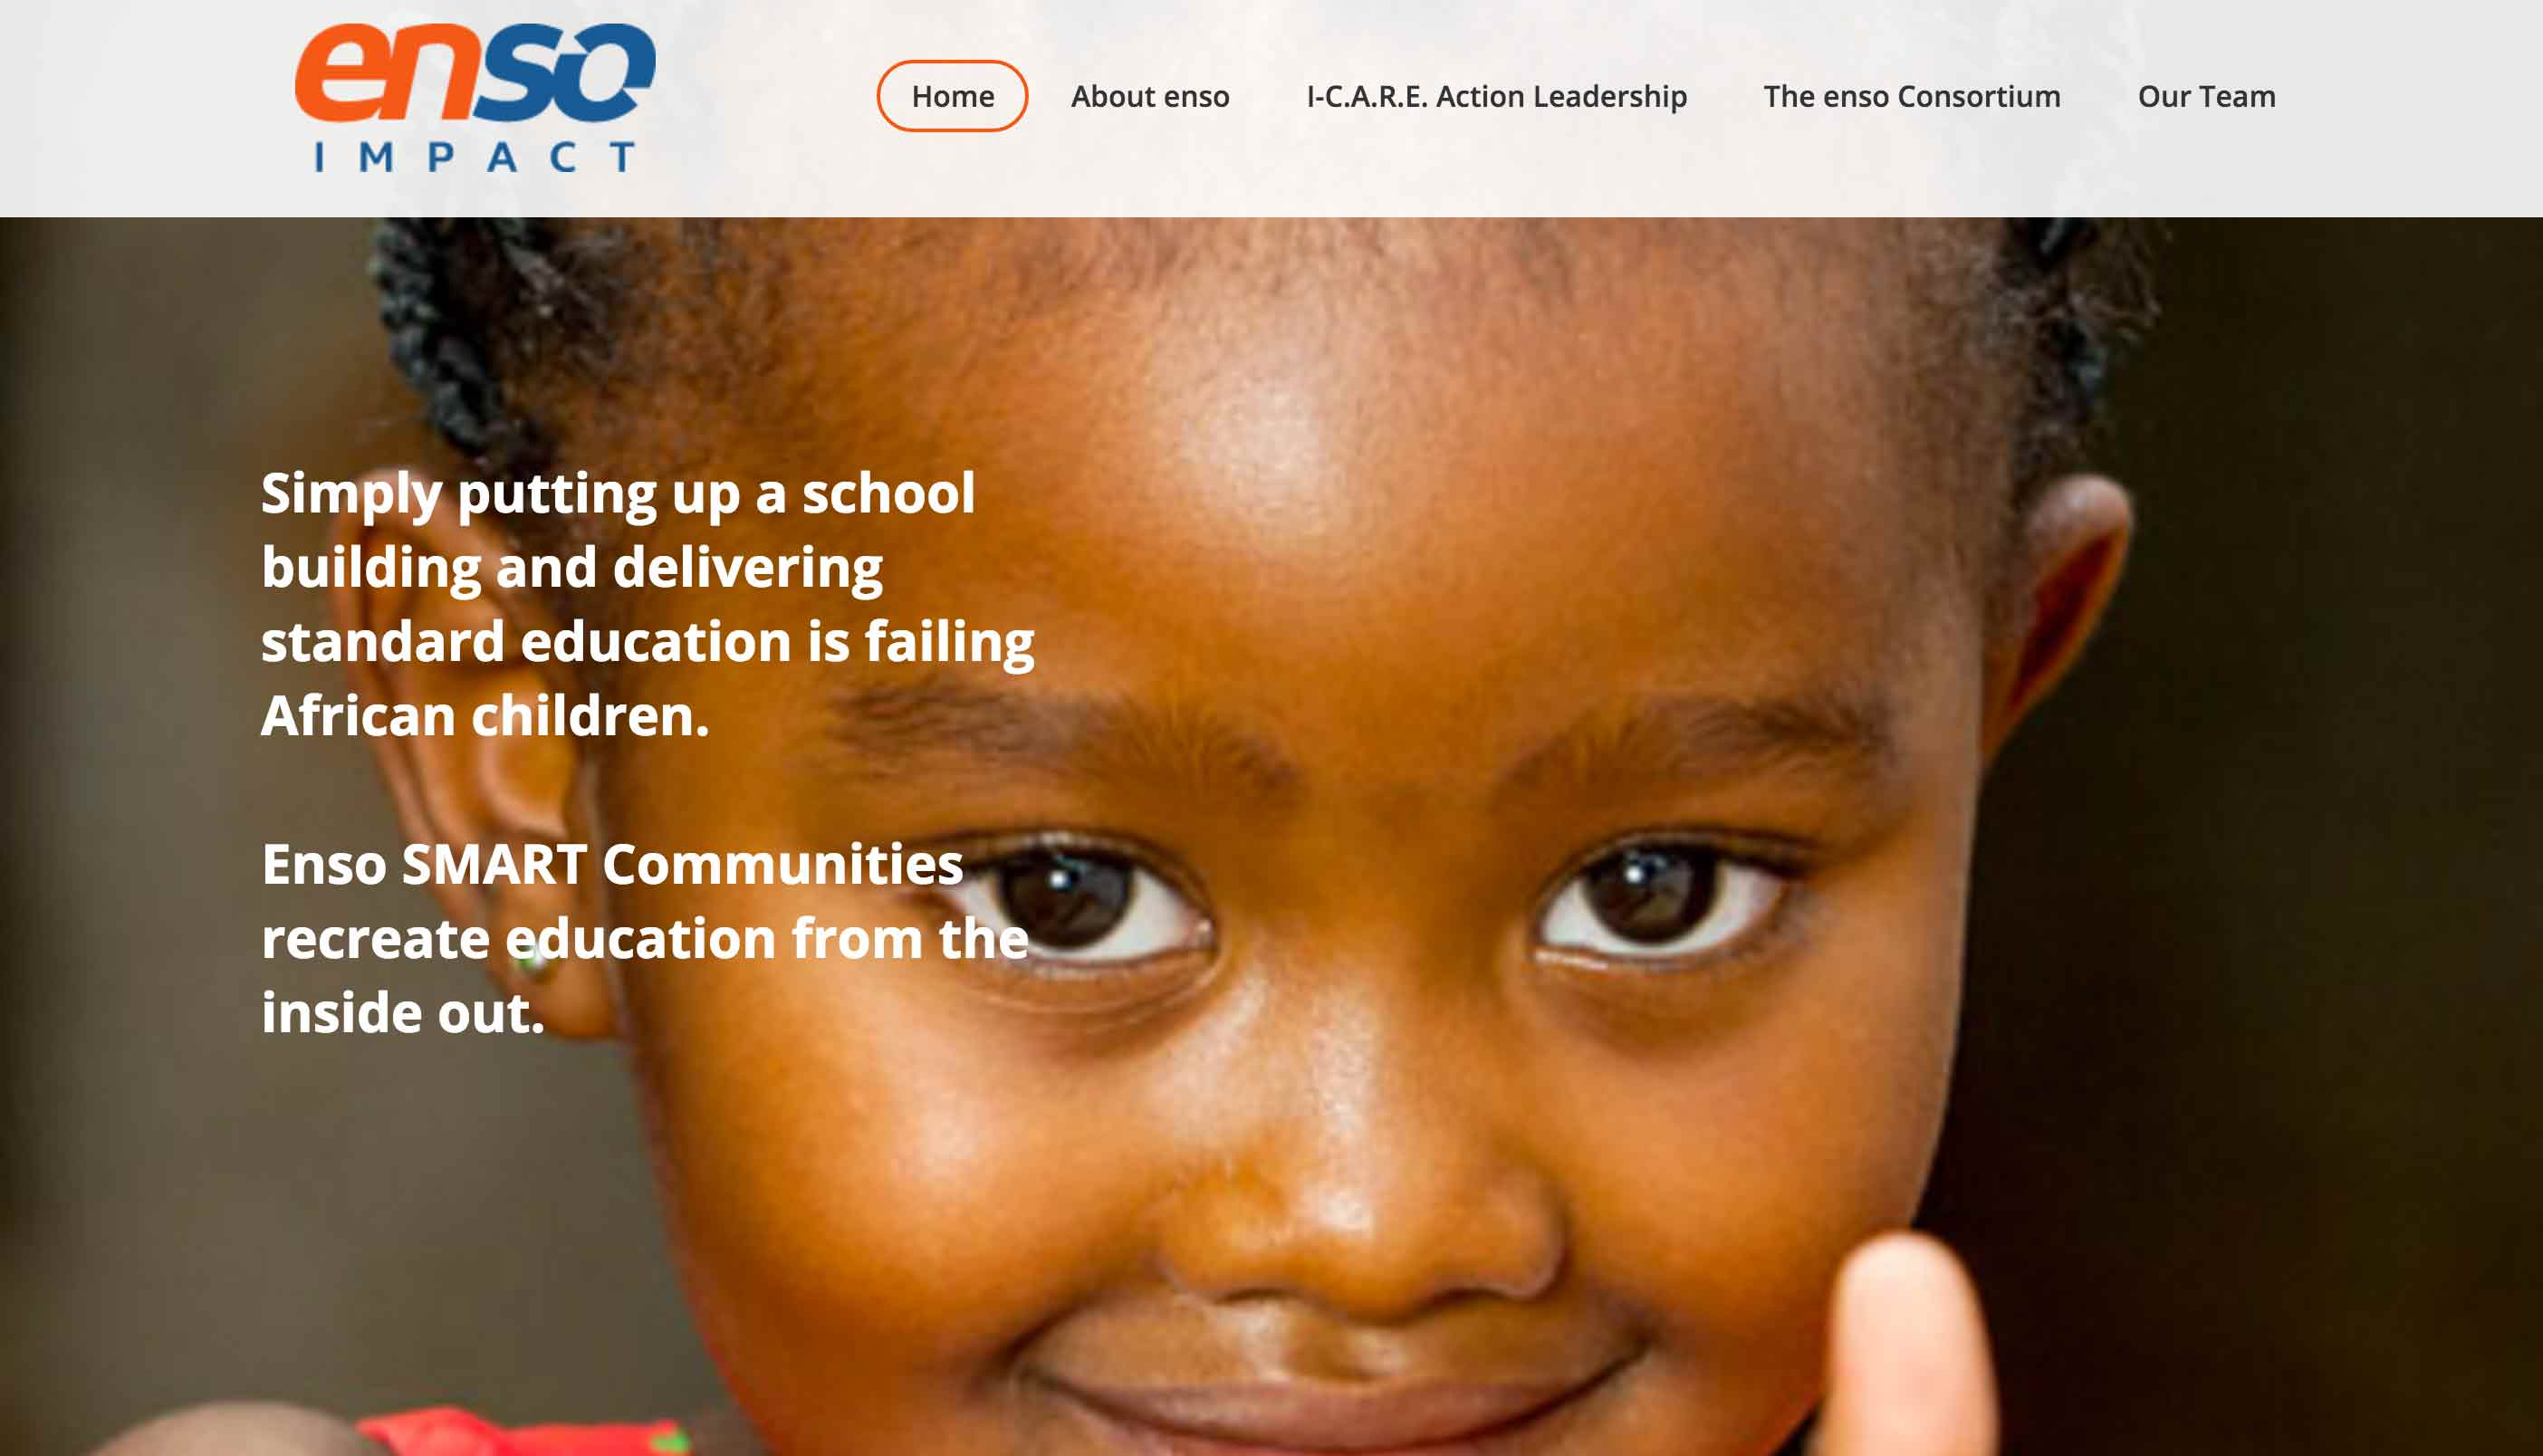 Enso SMART Communities recreate education from the inside out.